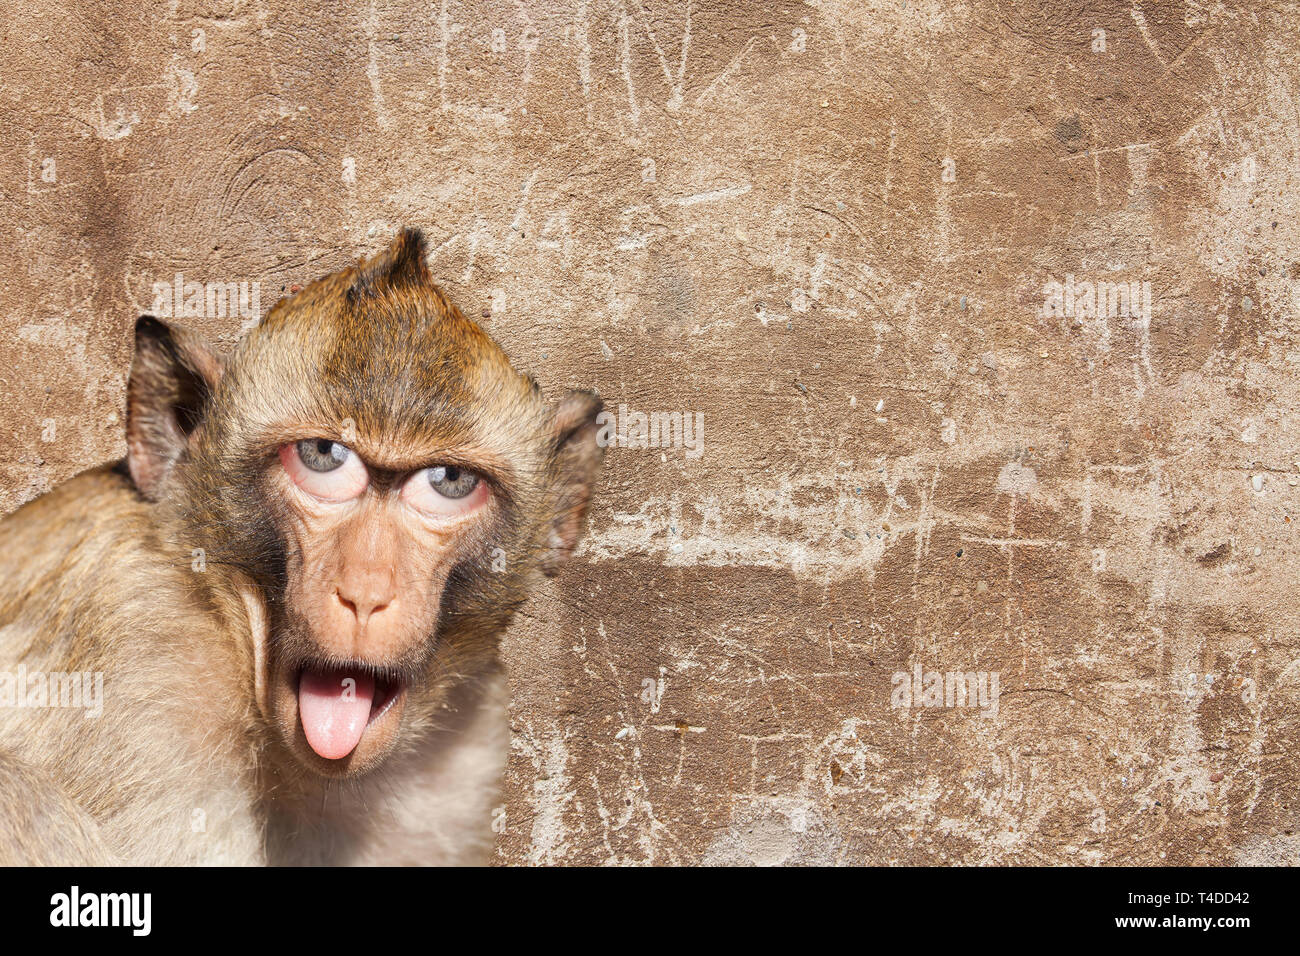 Rhesus monkey with his tongue sticking out, with human eyes and gray wall in the background - Photoshop Composing - Stock Image